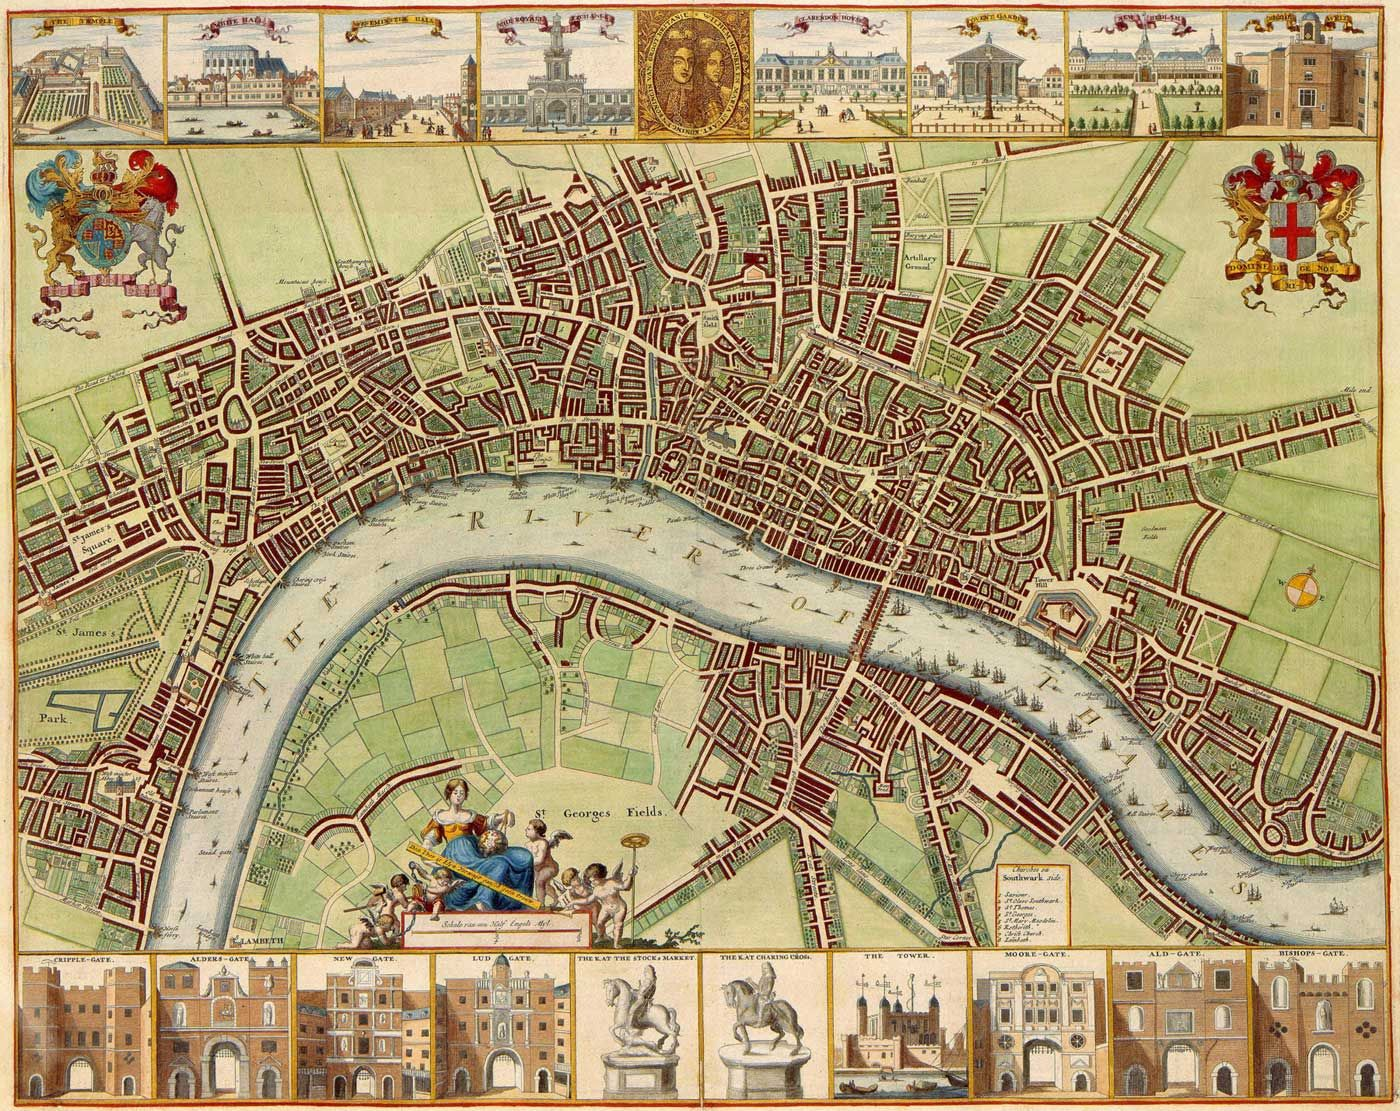 London Historical Map Mapsofnet Travelling Pinterest Britain - London map 1600